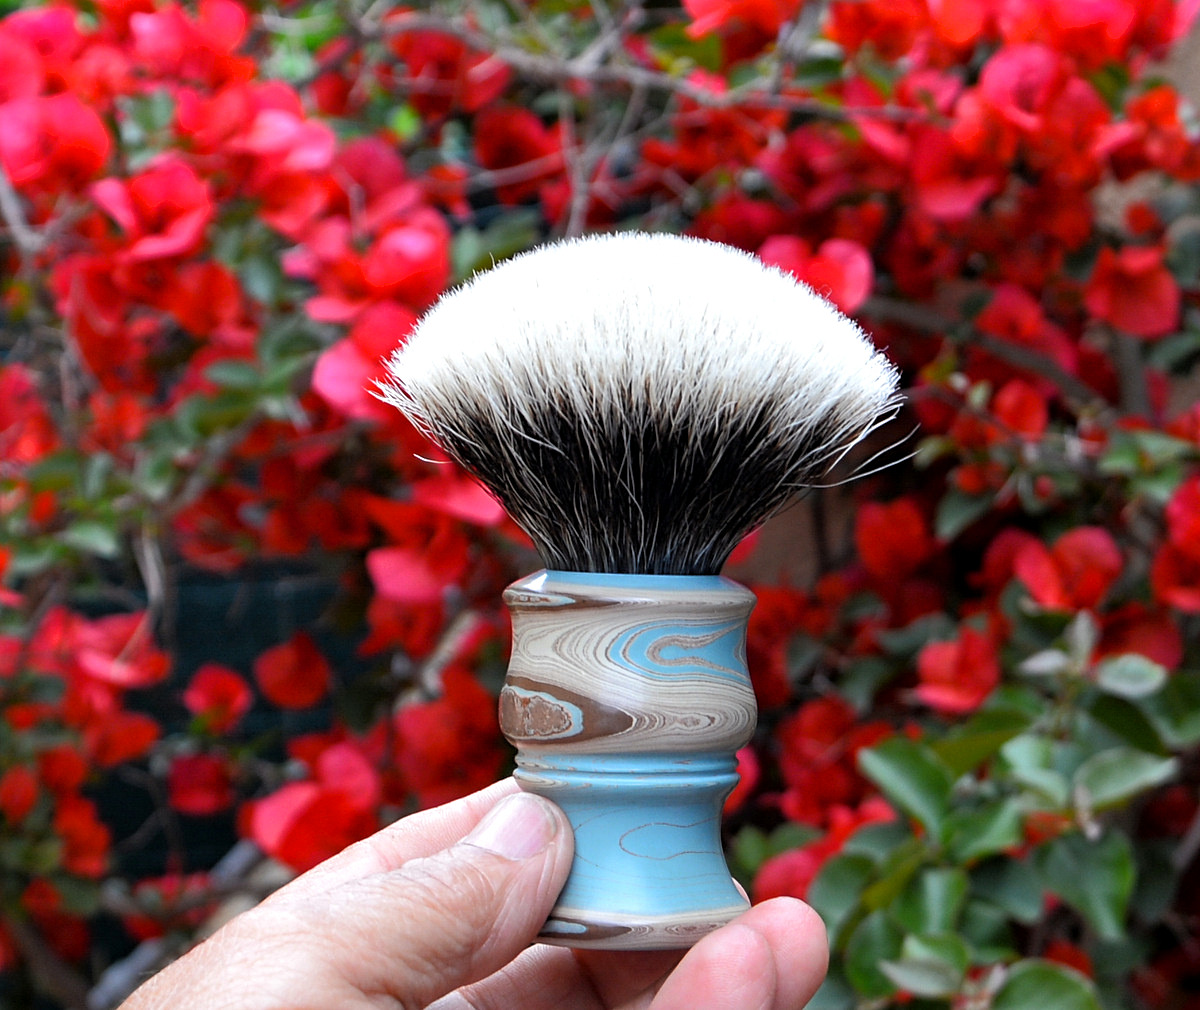 Revue : shavemac silvertip 2 bandes - Page 4 Mes_bl41